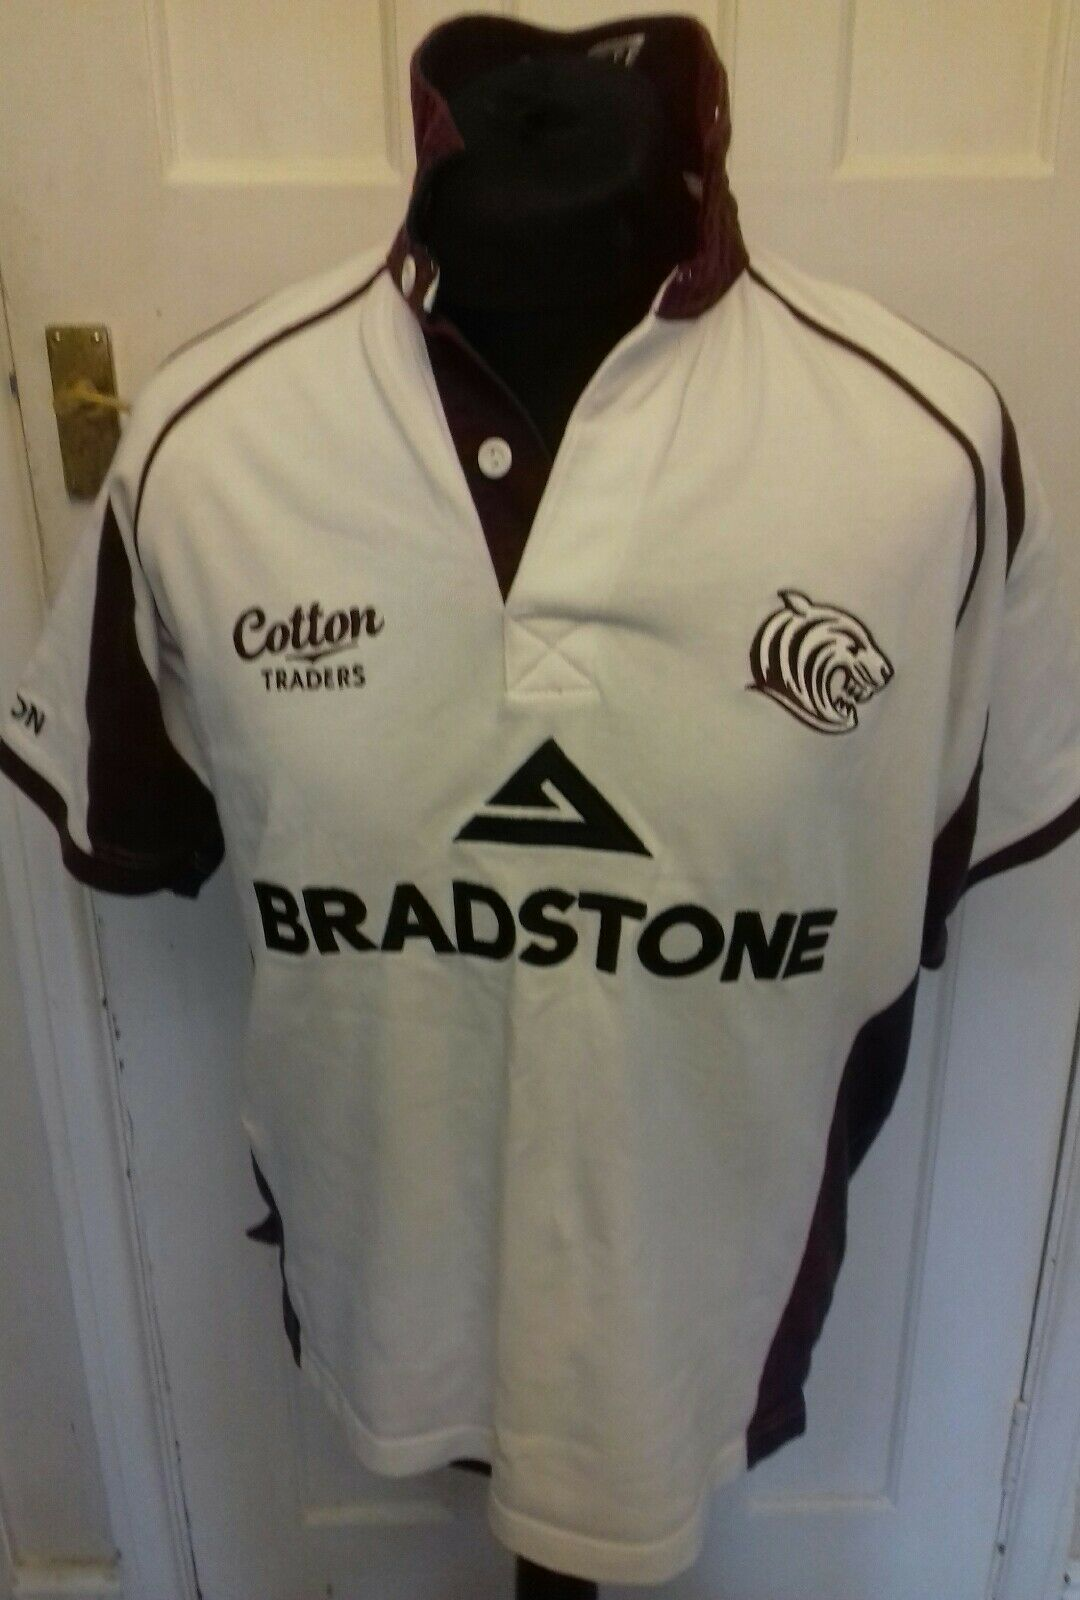 LEICESTER TIGERS COTTON TRADERS  RUGBY  SHIRT JERSEY TOP WHITE BRADSTONE MEDIUM